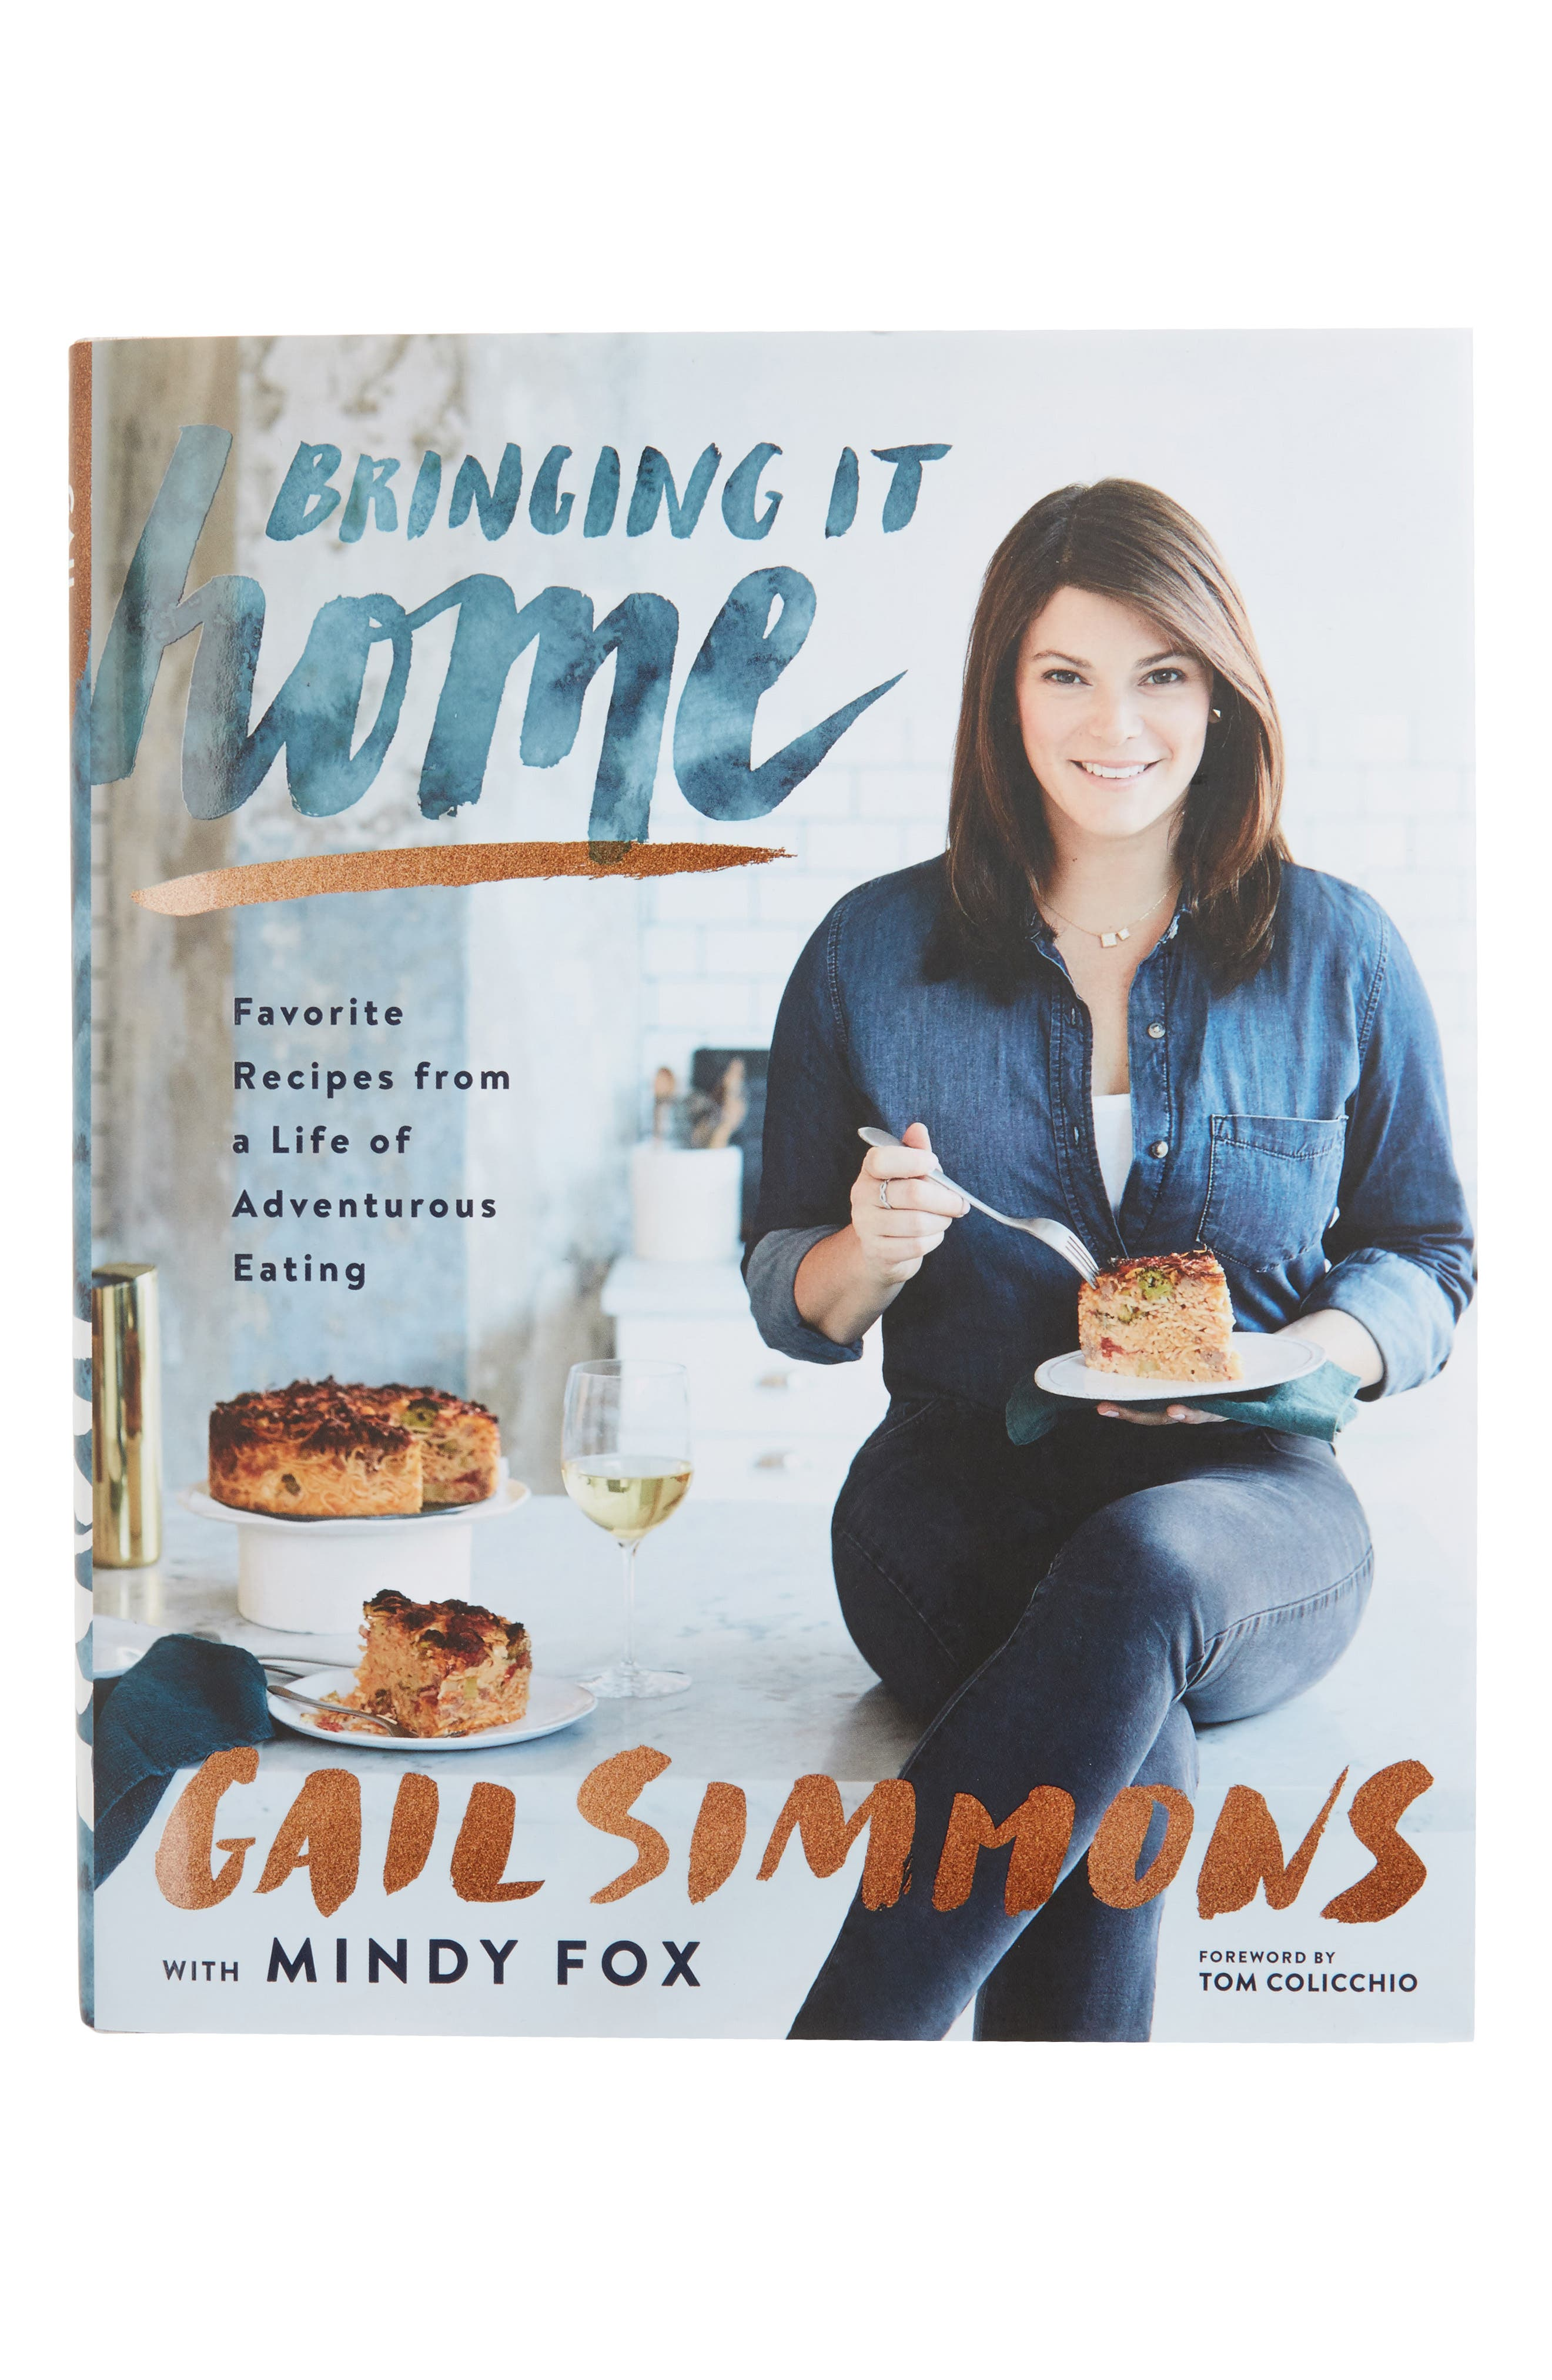 Alternate Image 1 Selected - Bringing it Home: Favorite Recipes from a Life of Adventurous Eating